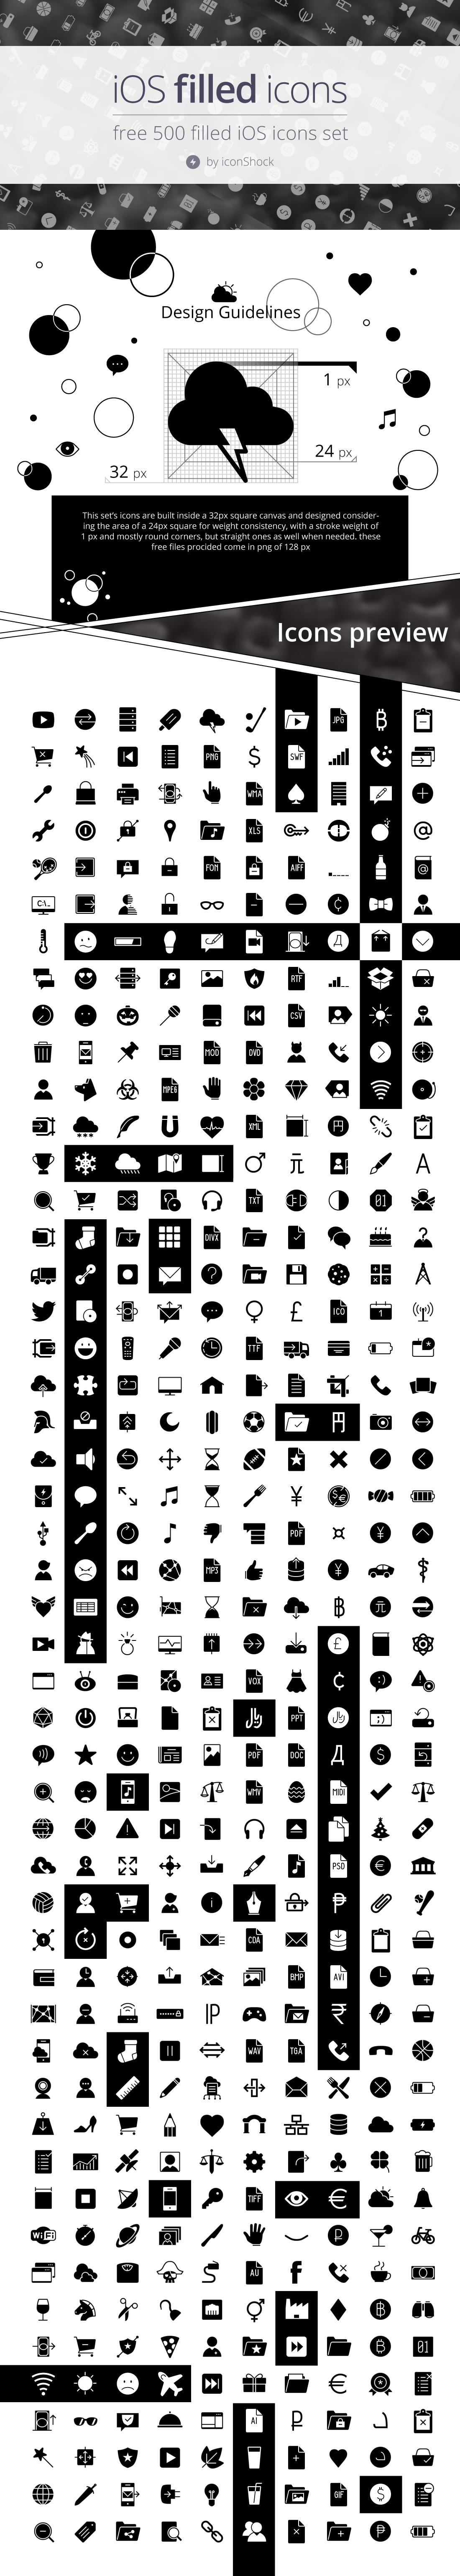 ios_filled_free_icons_1